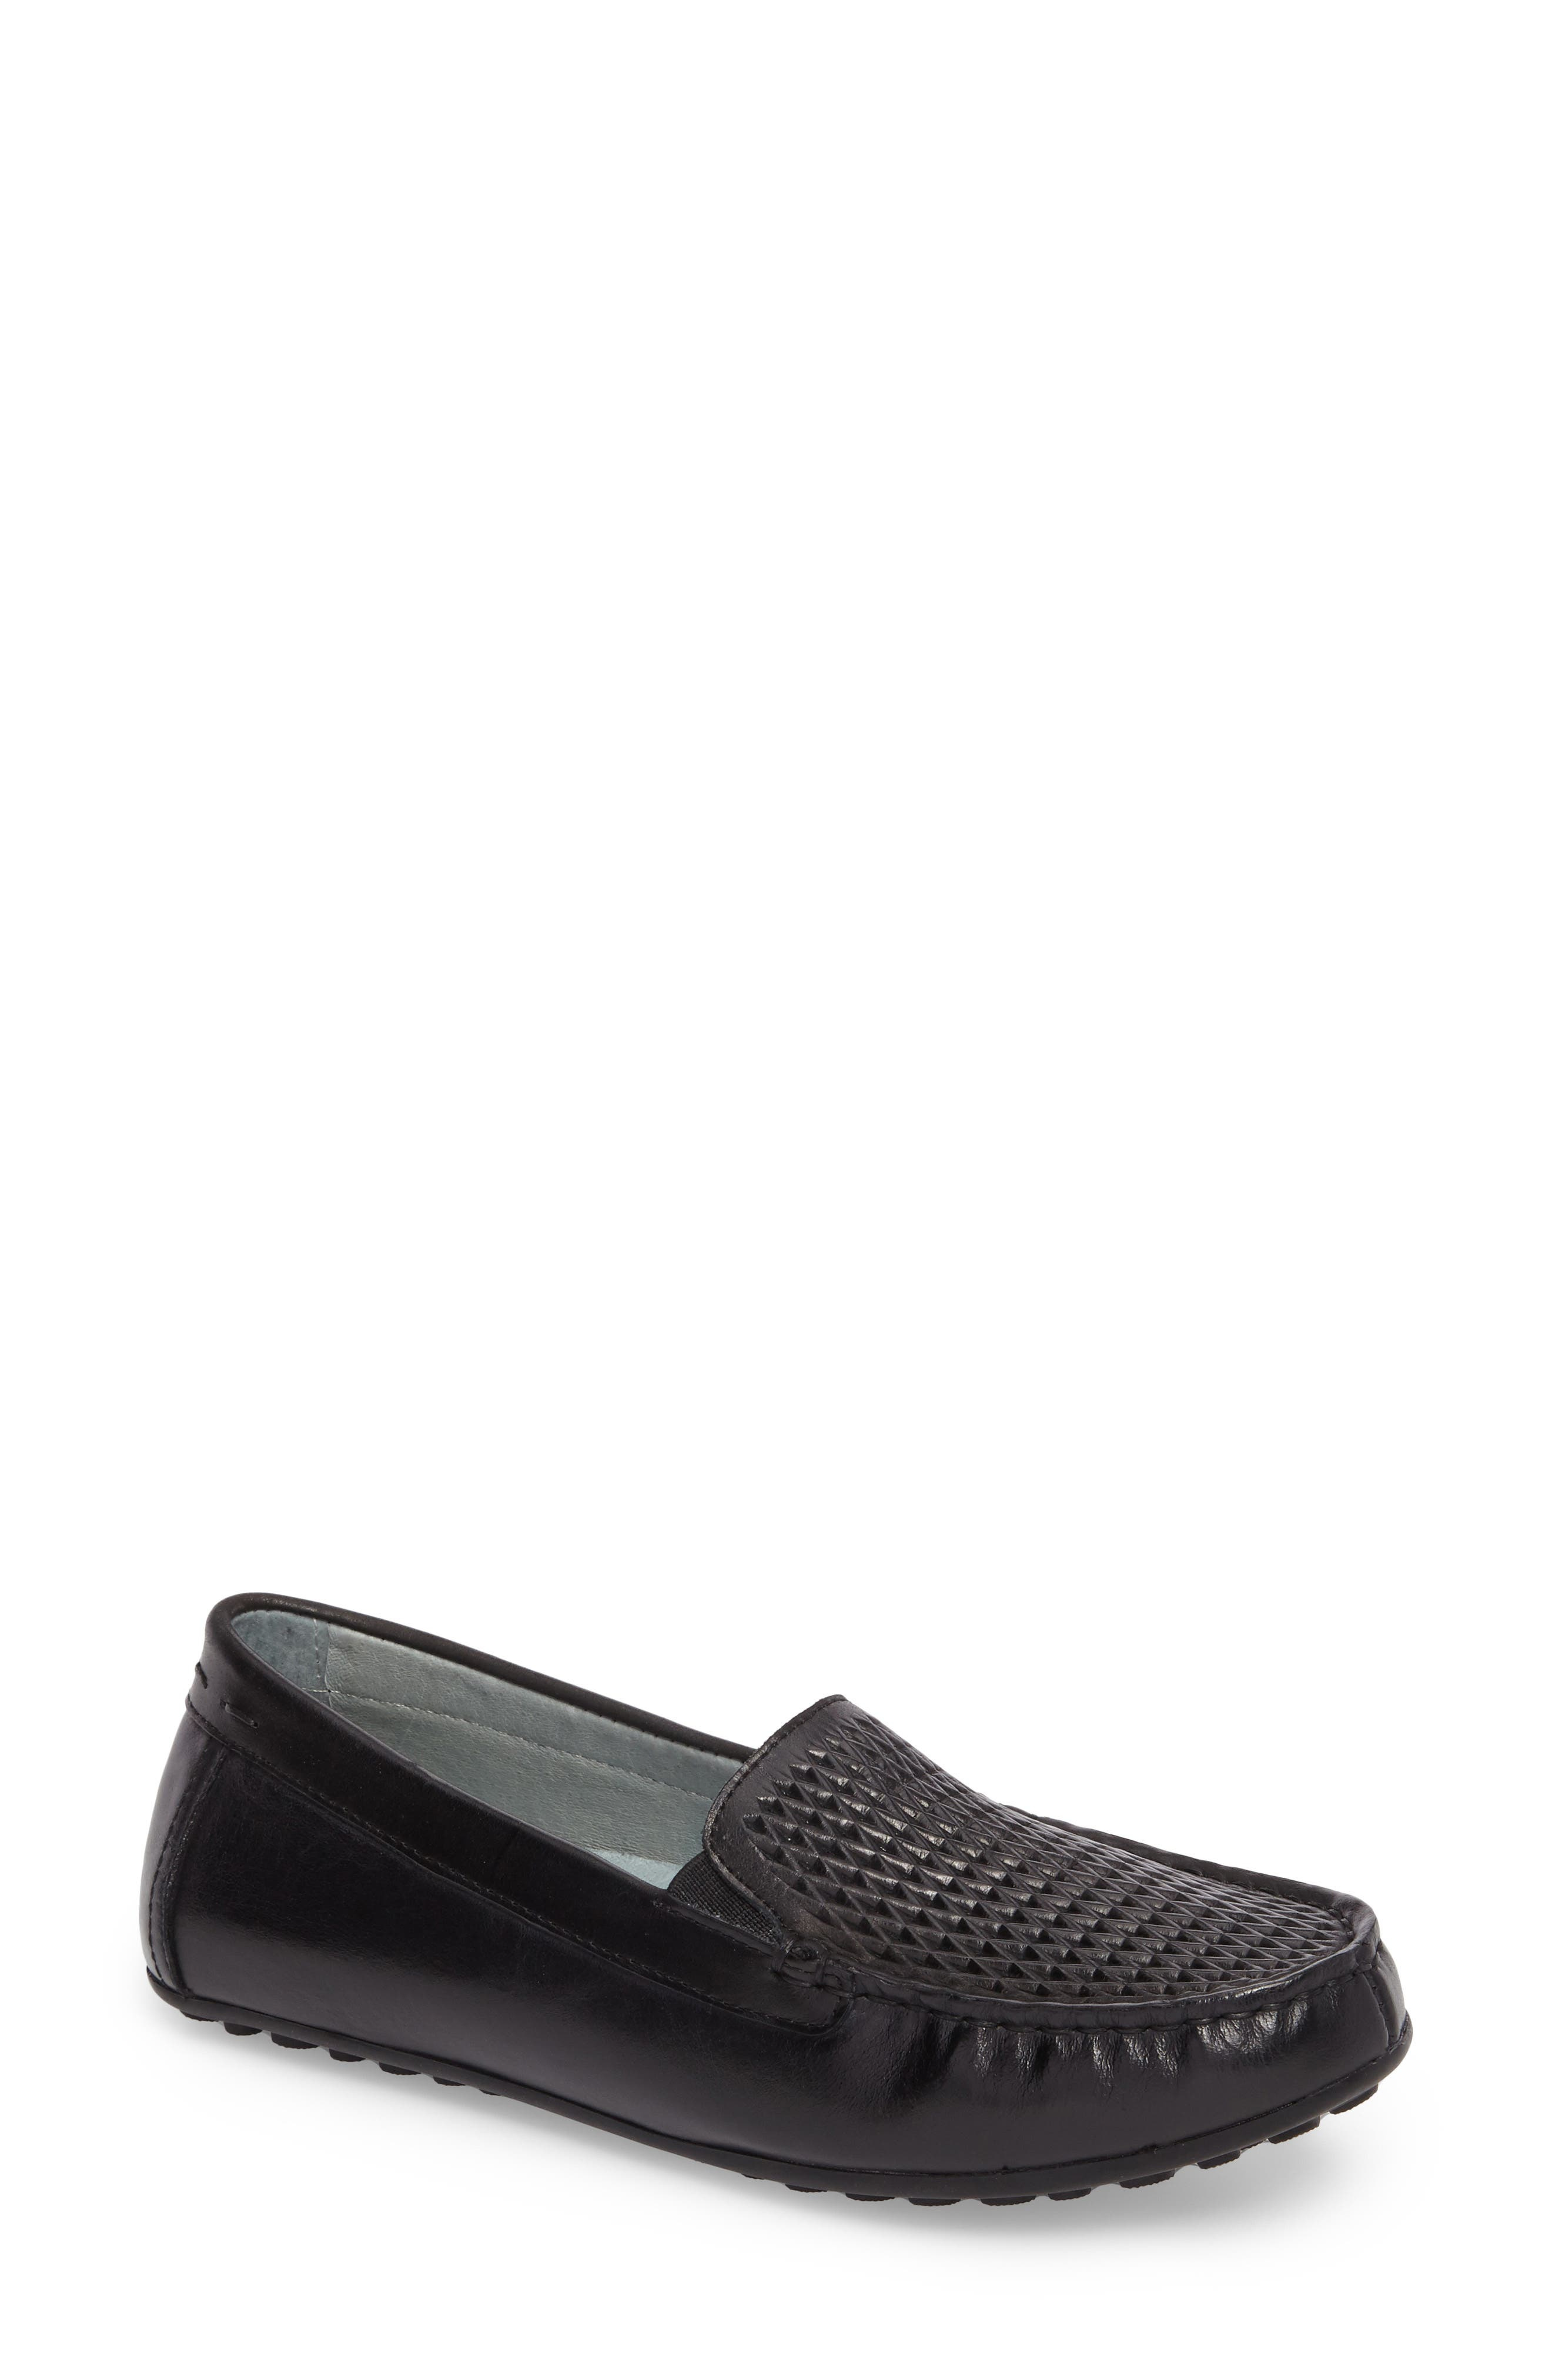 Posh Driving Loafer,                             Main thumbnail 1, color,                             BLACK LEATHER